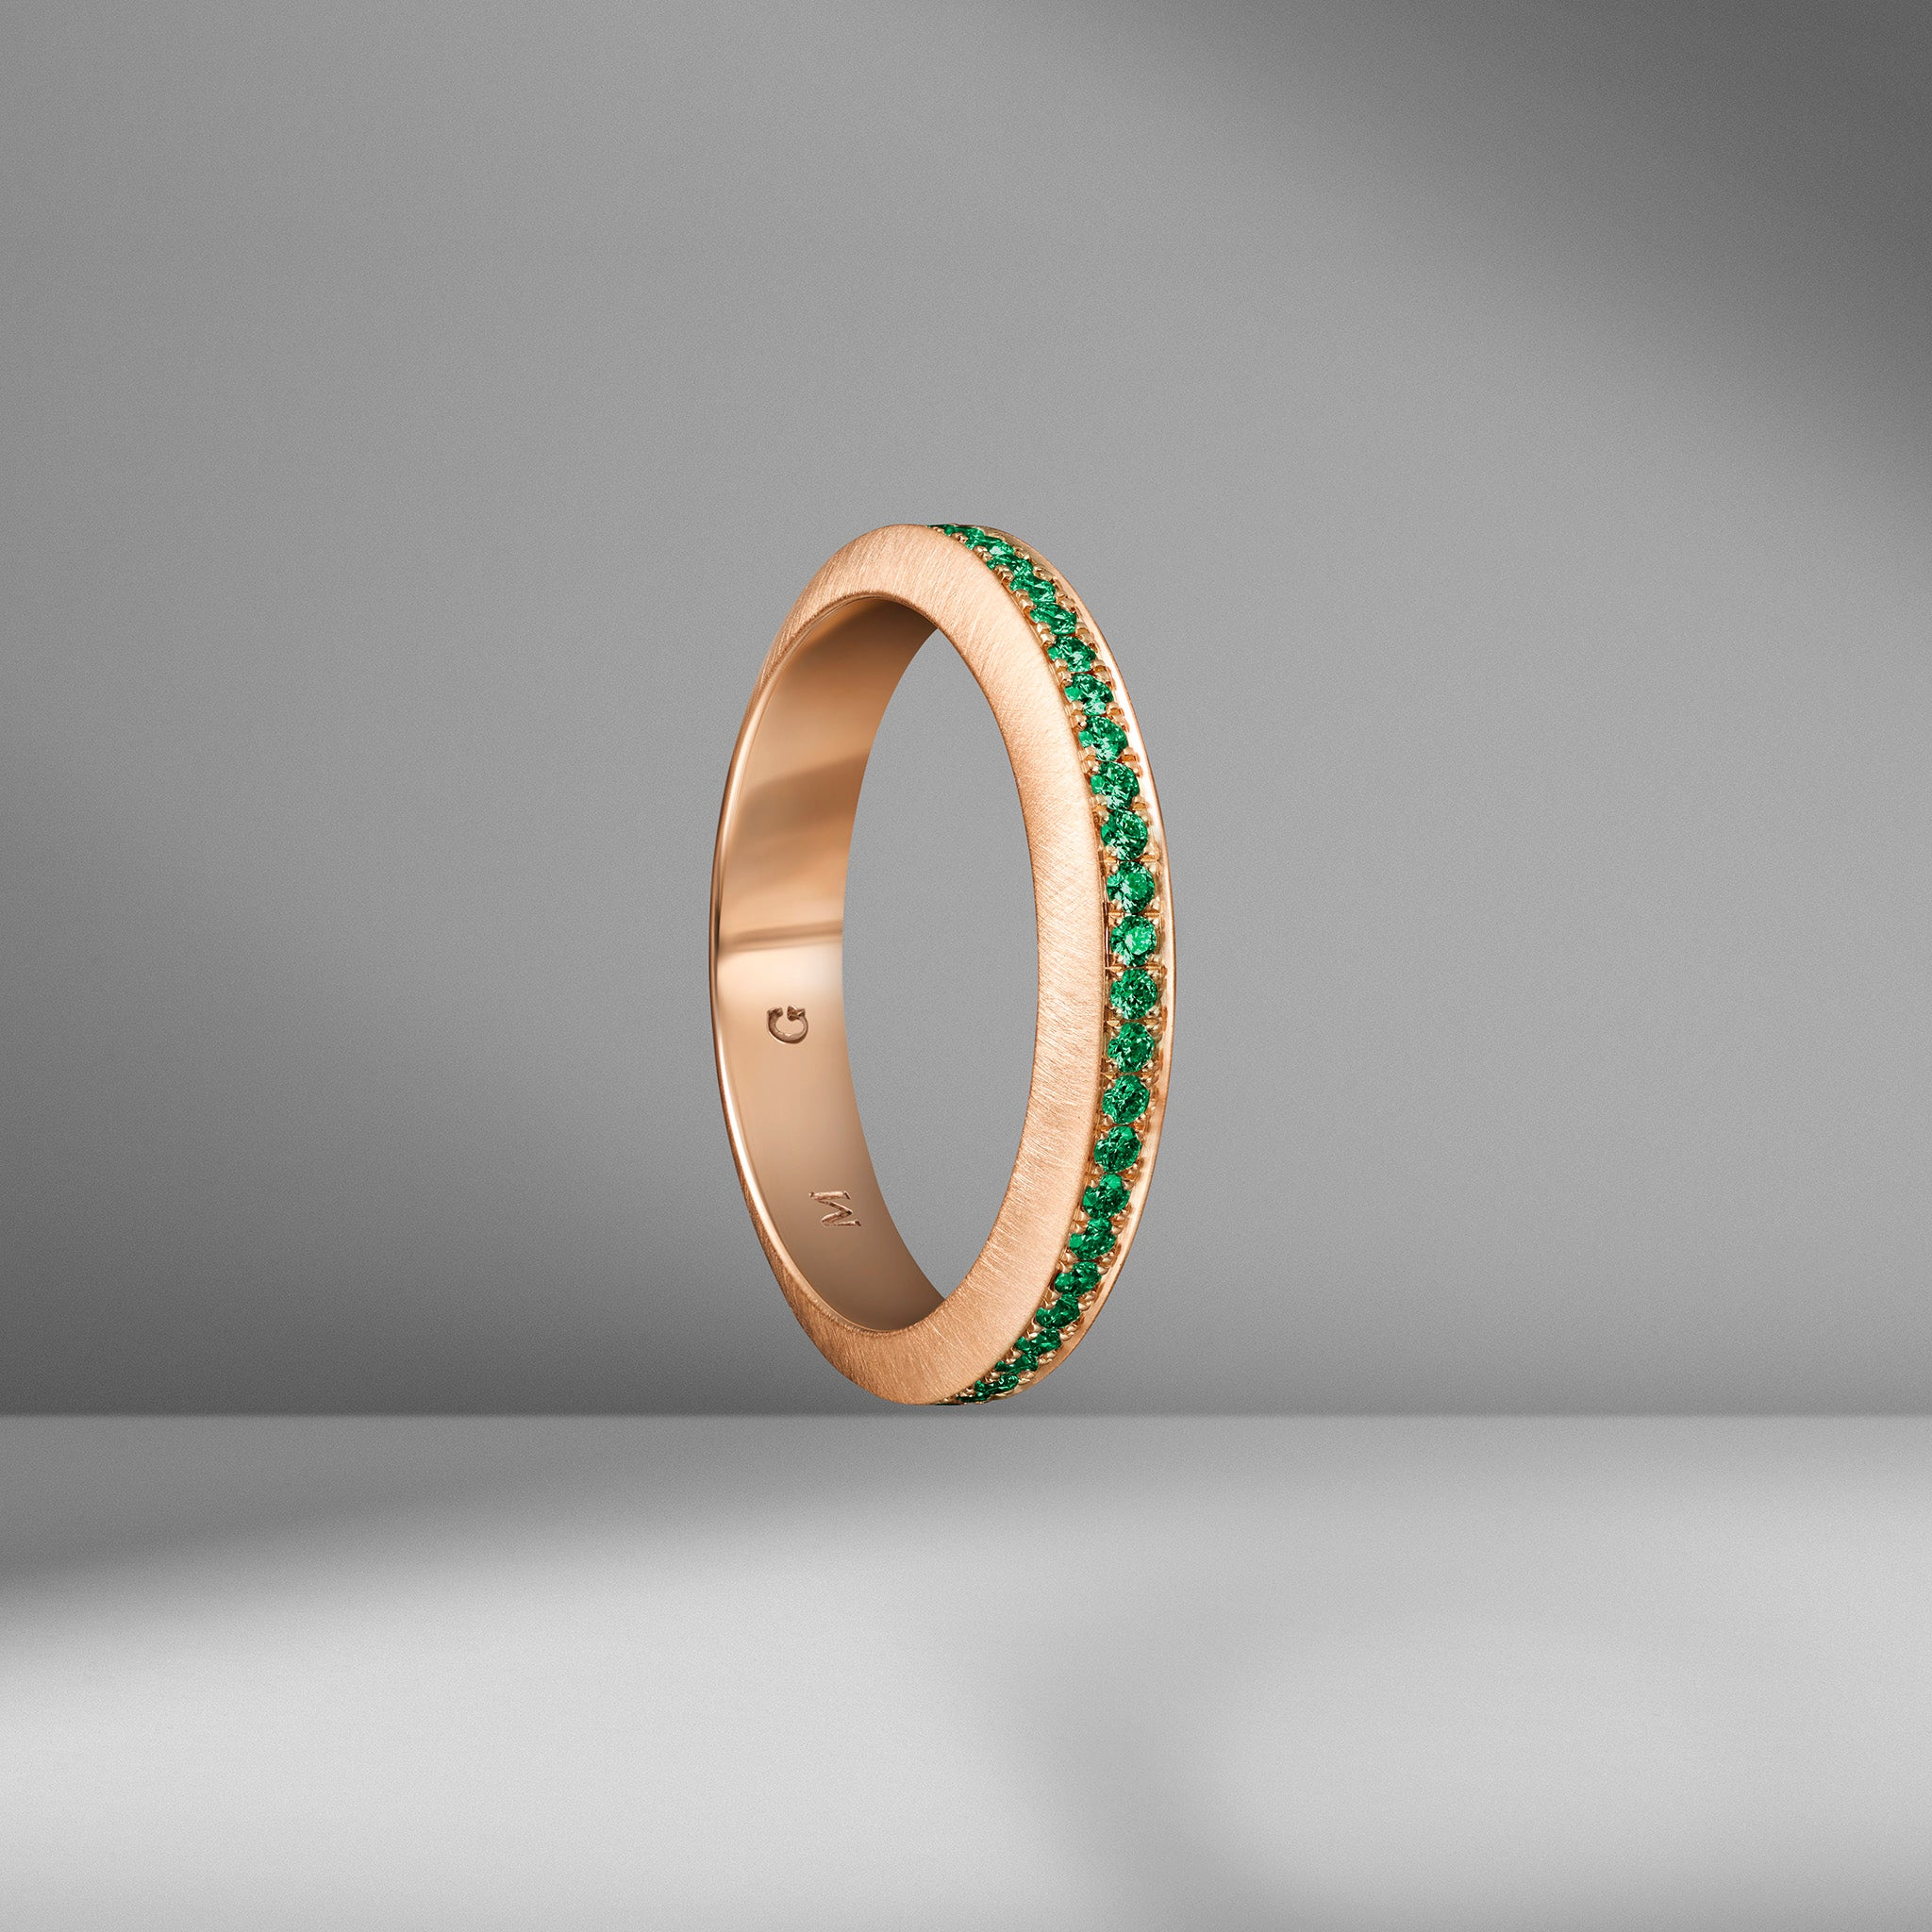 Beveled Edge Emerald Ring